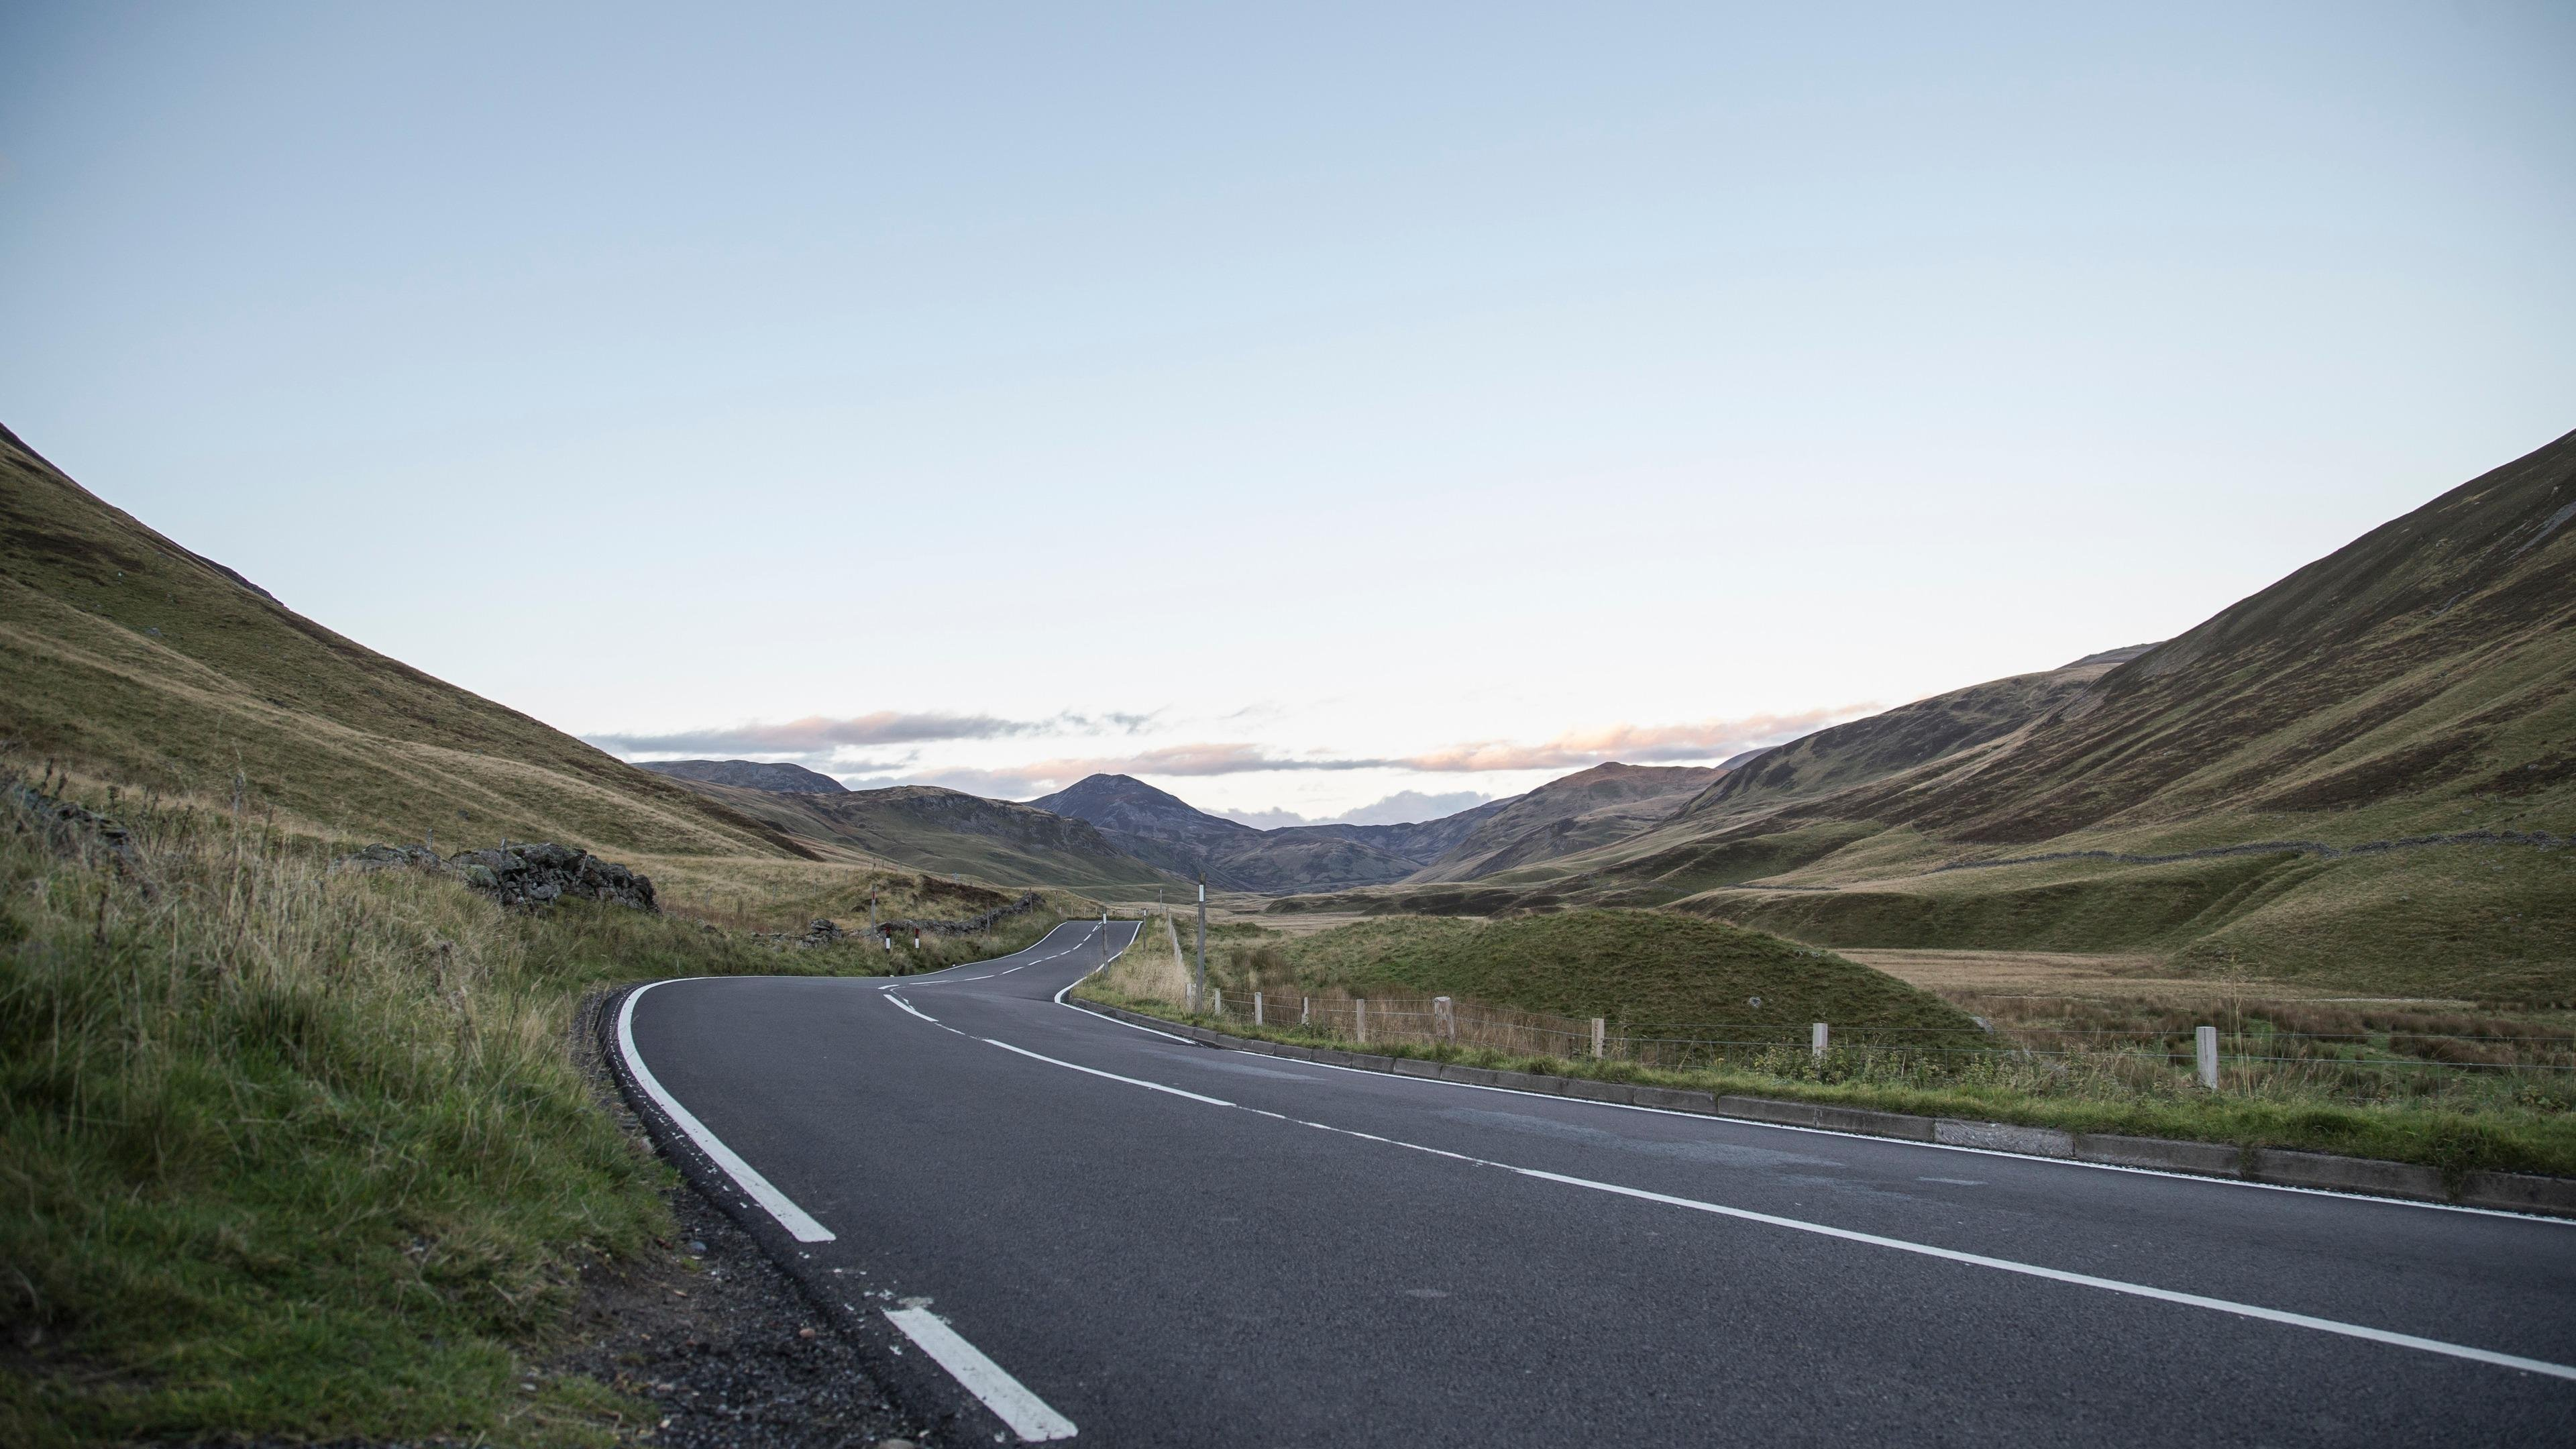 Road and Green Mountain Landscape wallpaper